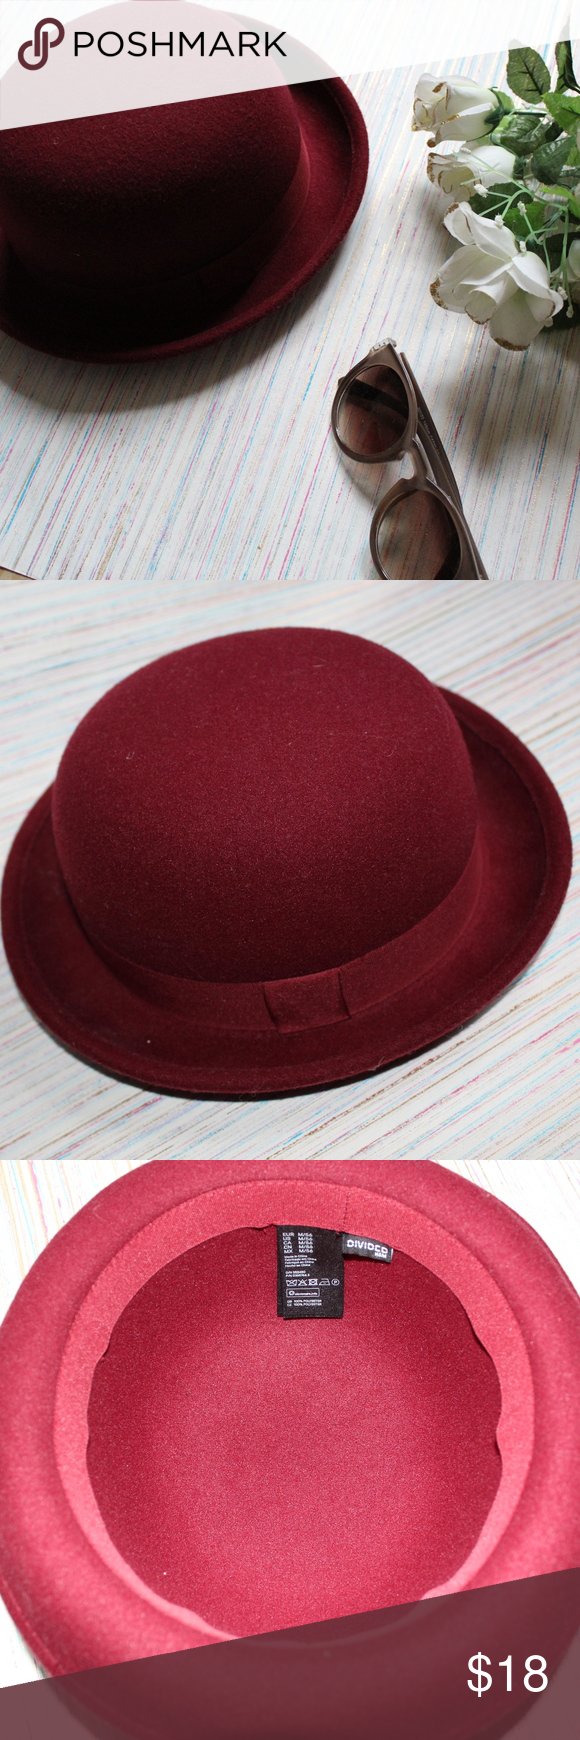 e56634a95e6b6 H M Red bowler hat H M red bowler hat 56cm In brand new condition Available  for next business day shipping H M Accessories Hats